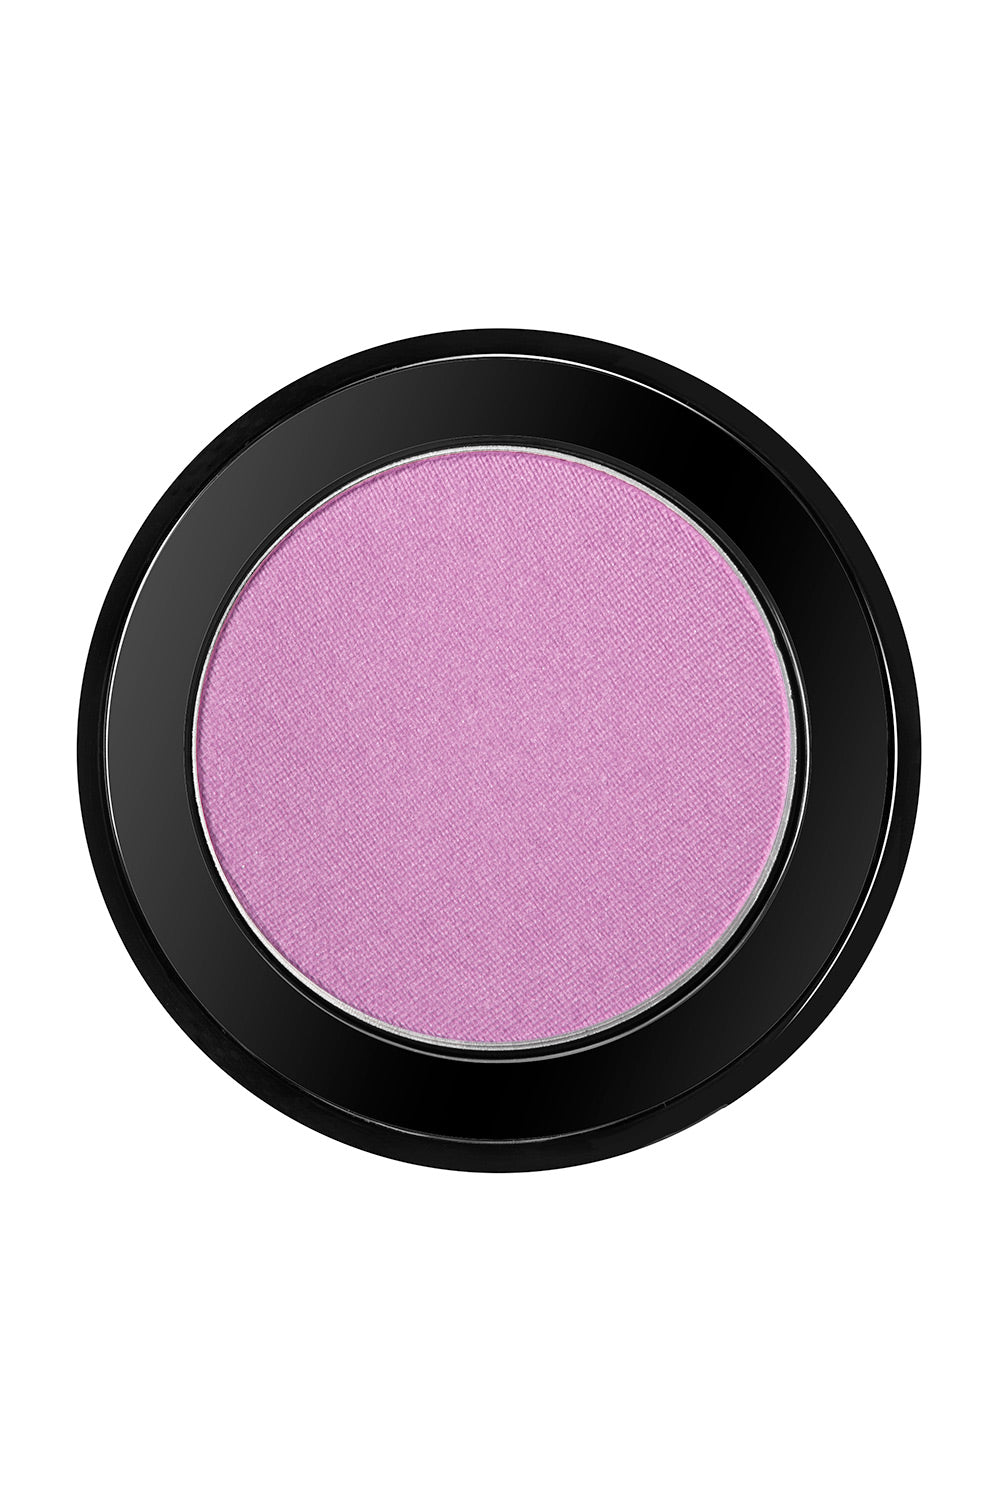 Type 1 Eyeshadow - Lavender Field